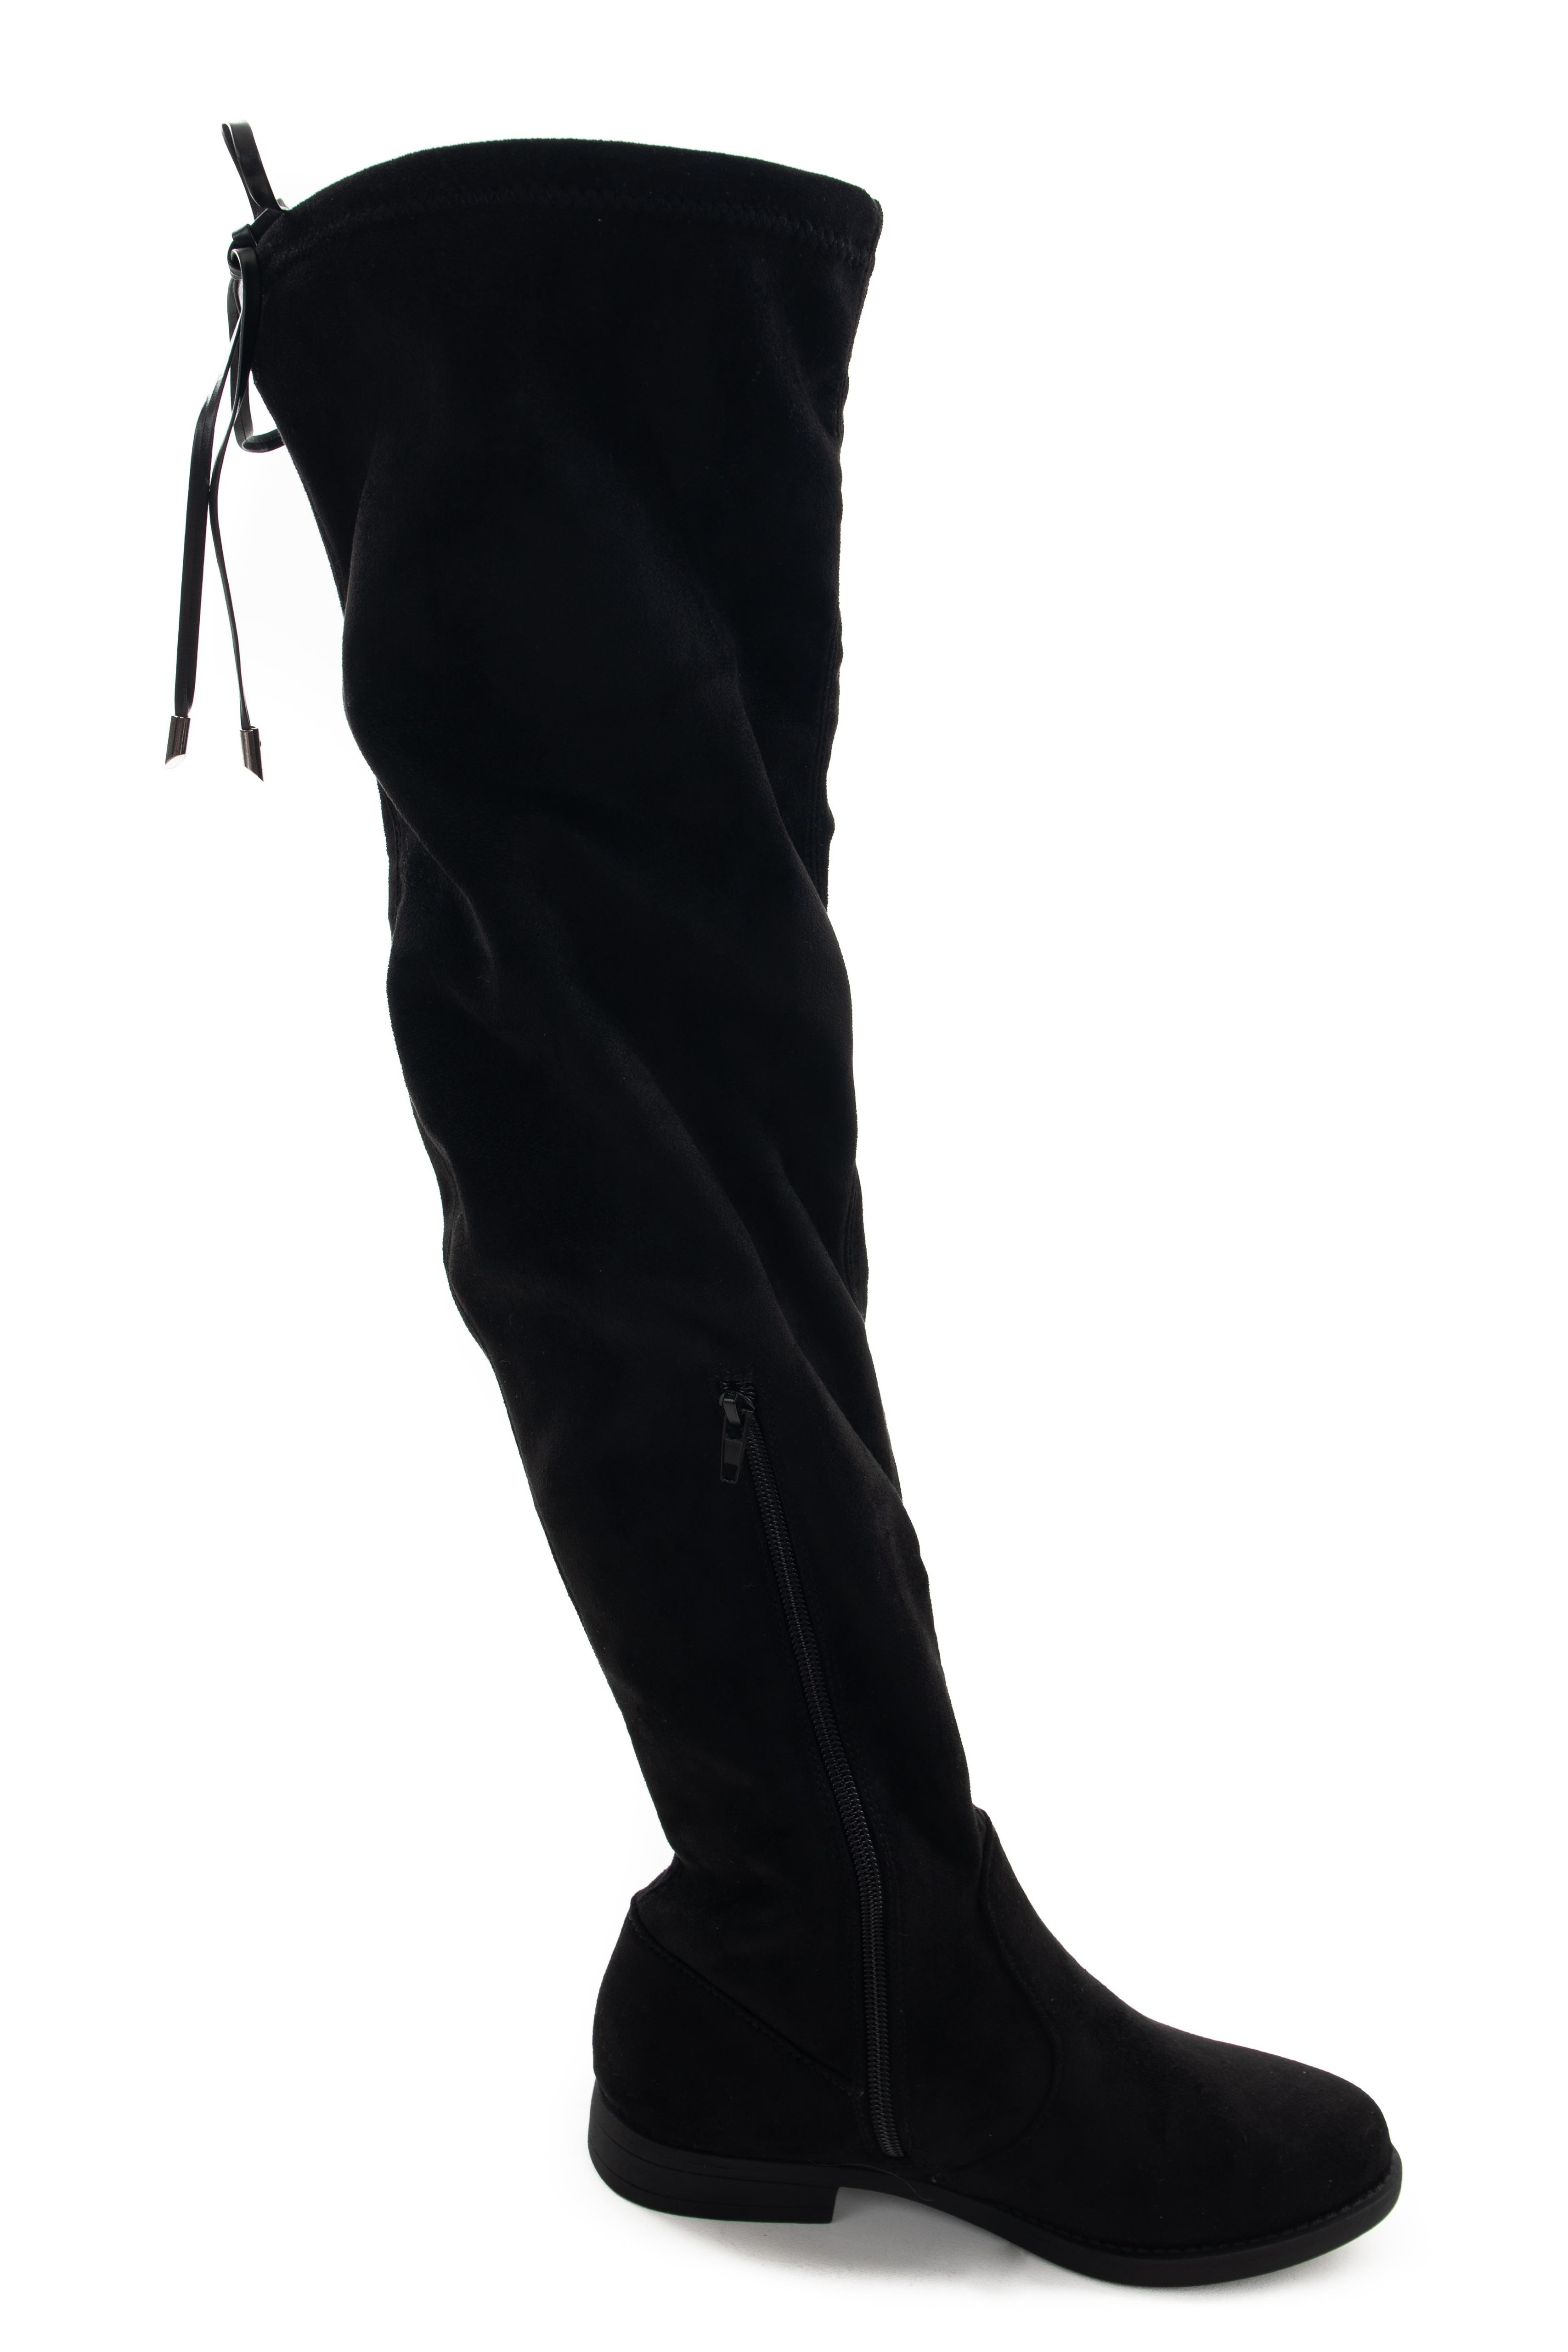 Black Thigh High Boots with Drawstring Detail